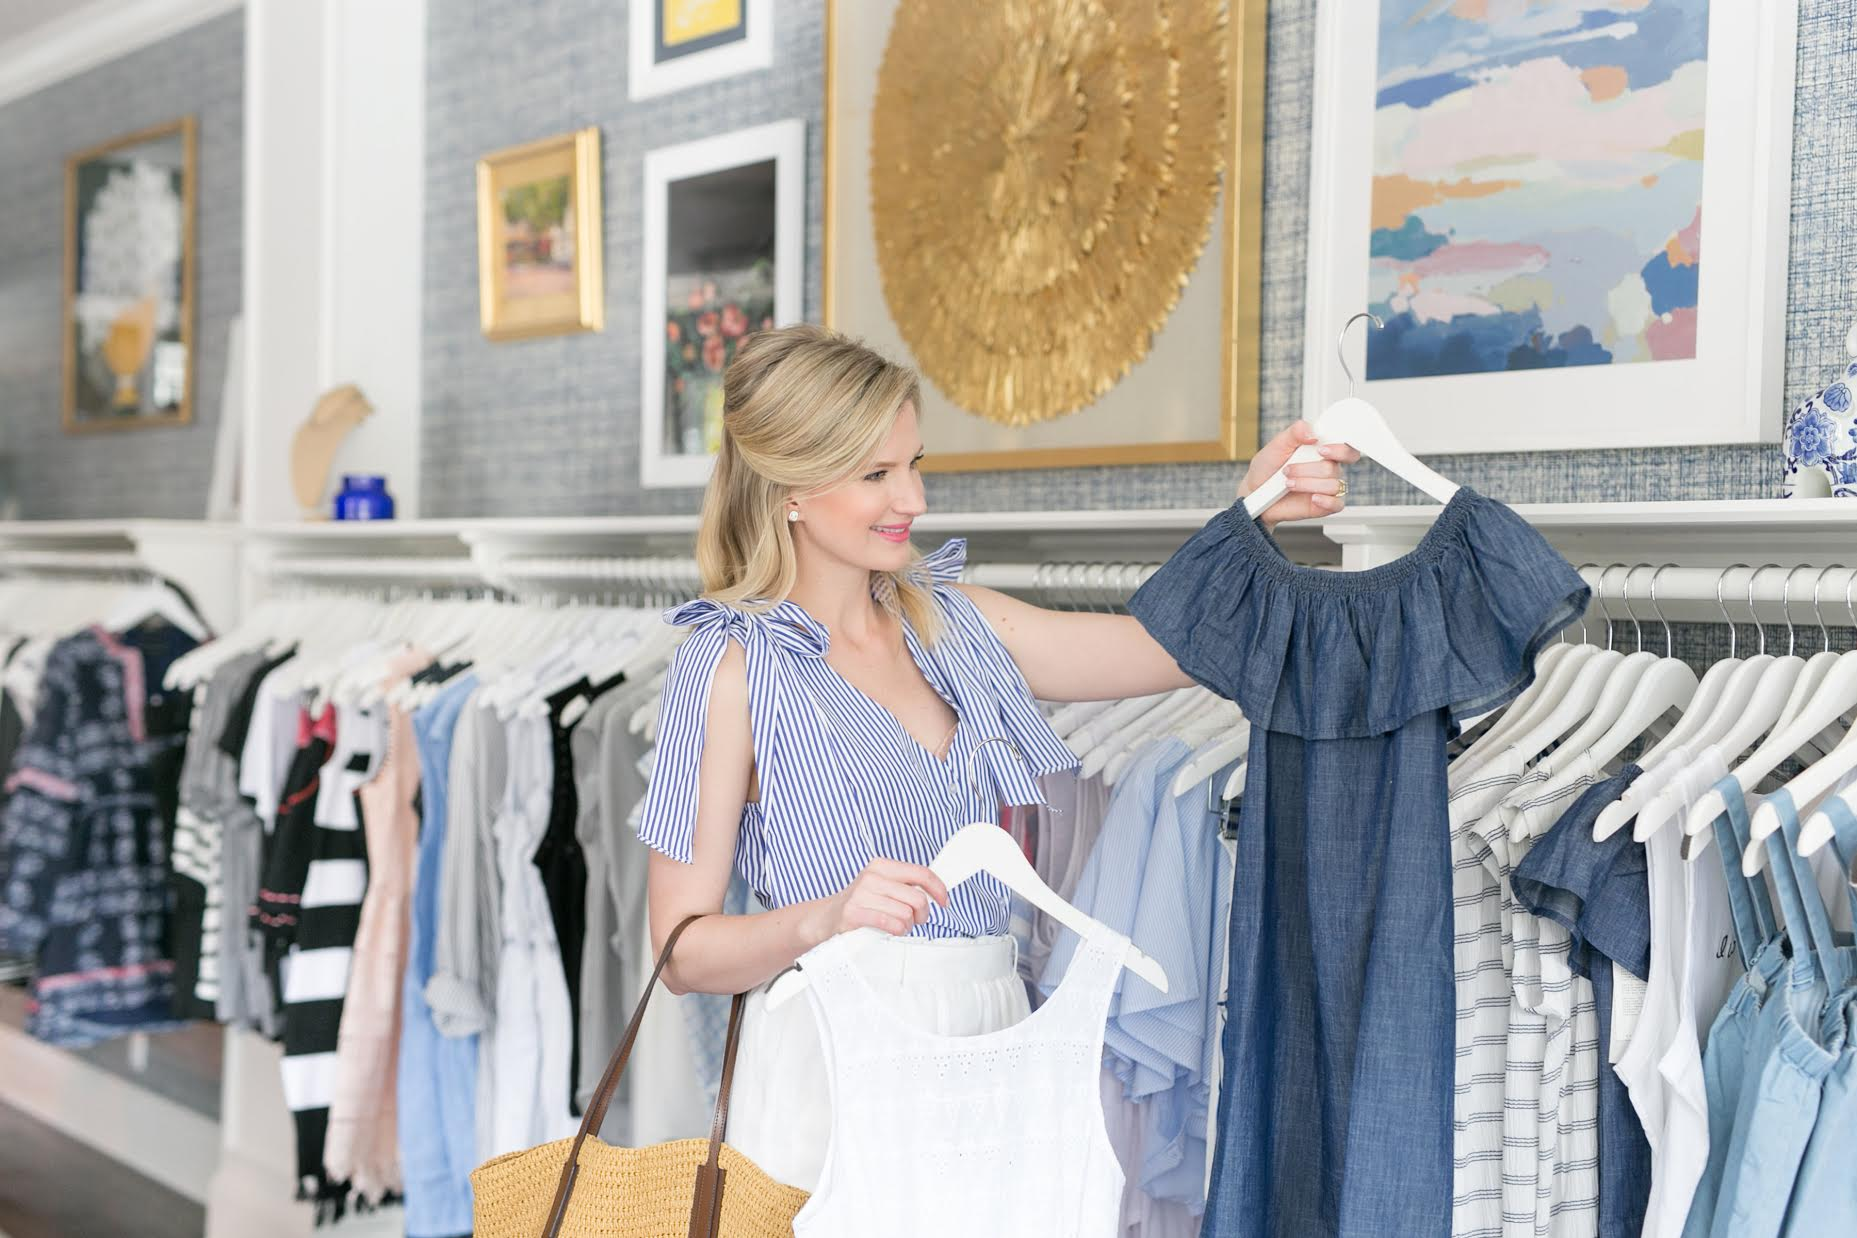 Blogger Ashley Brooke shops for in season summer styles at Violet Clover in Winter Park, Florida. | www.ashleybrookedesigns.com